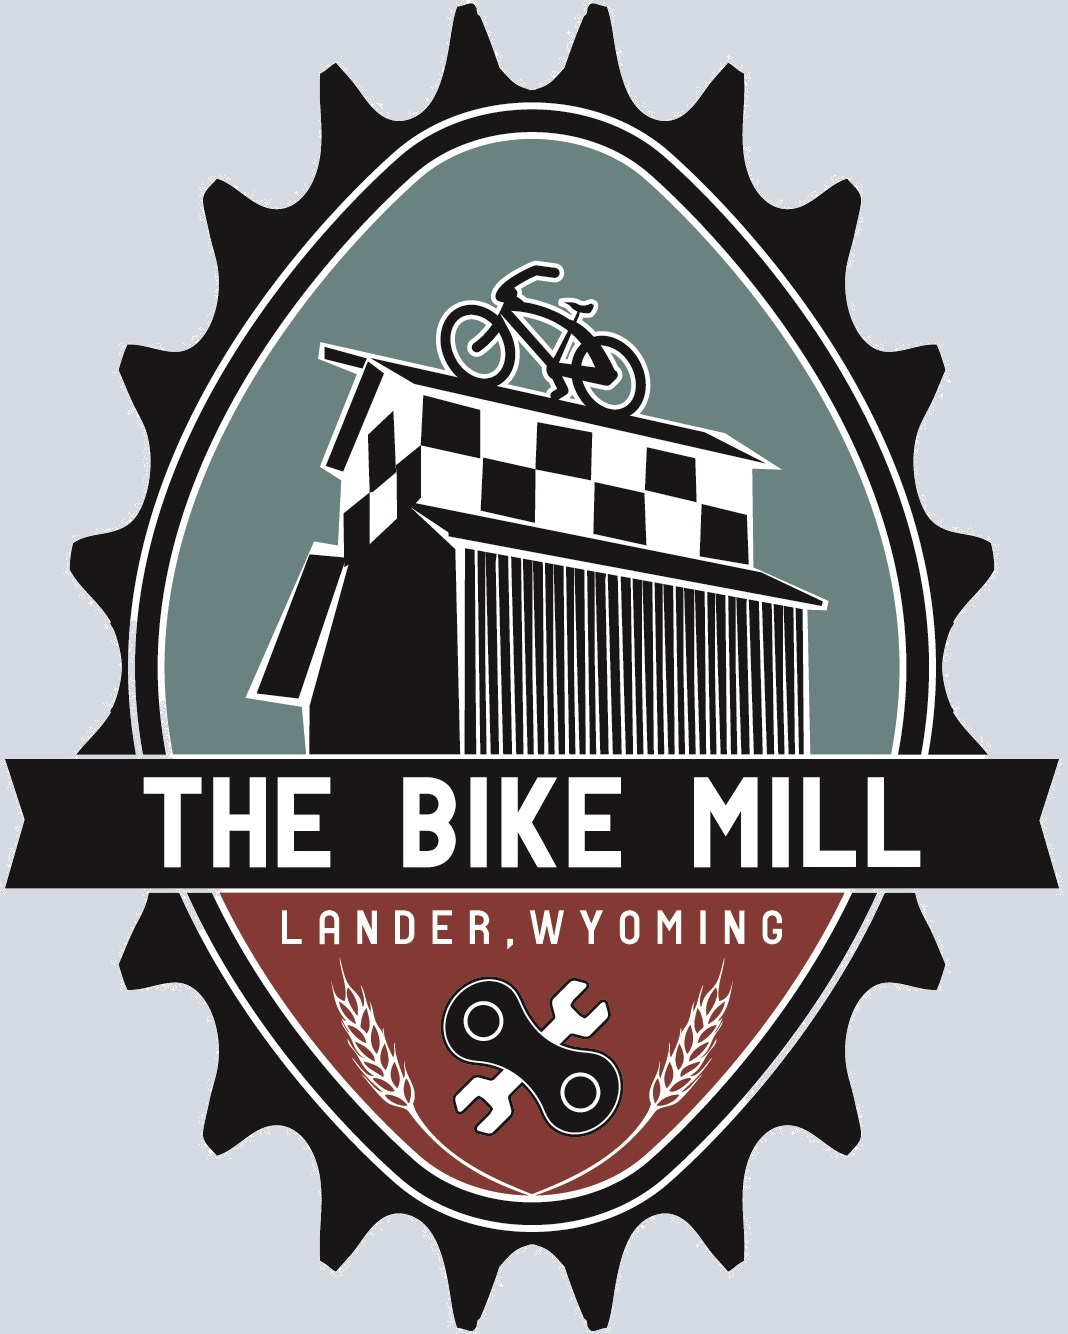 The Bike Mill